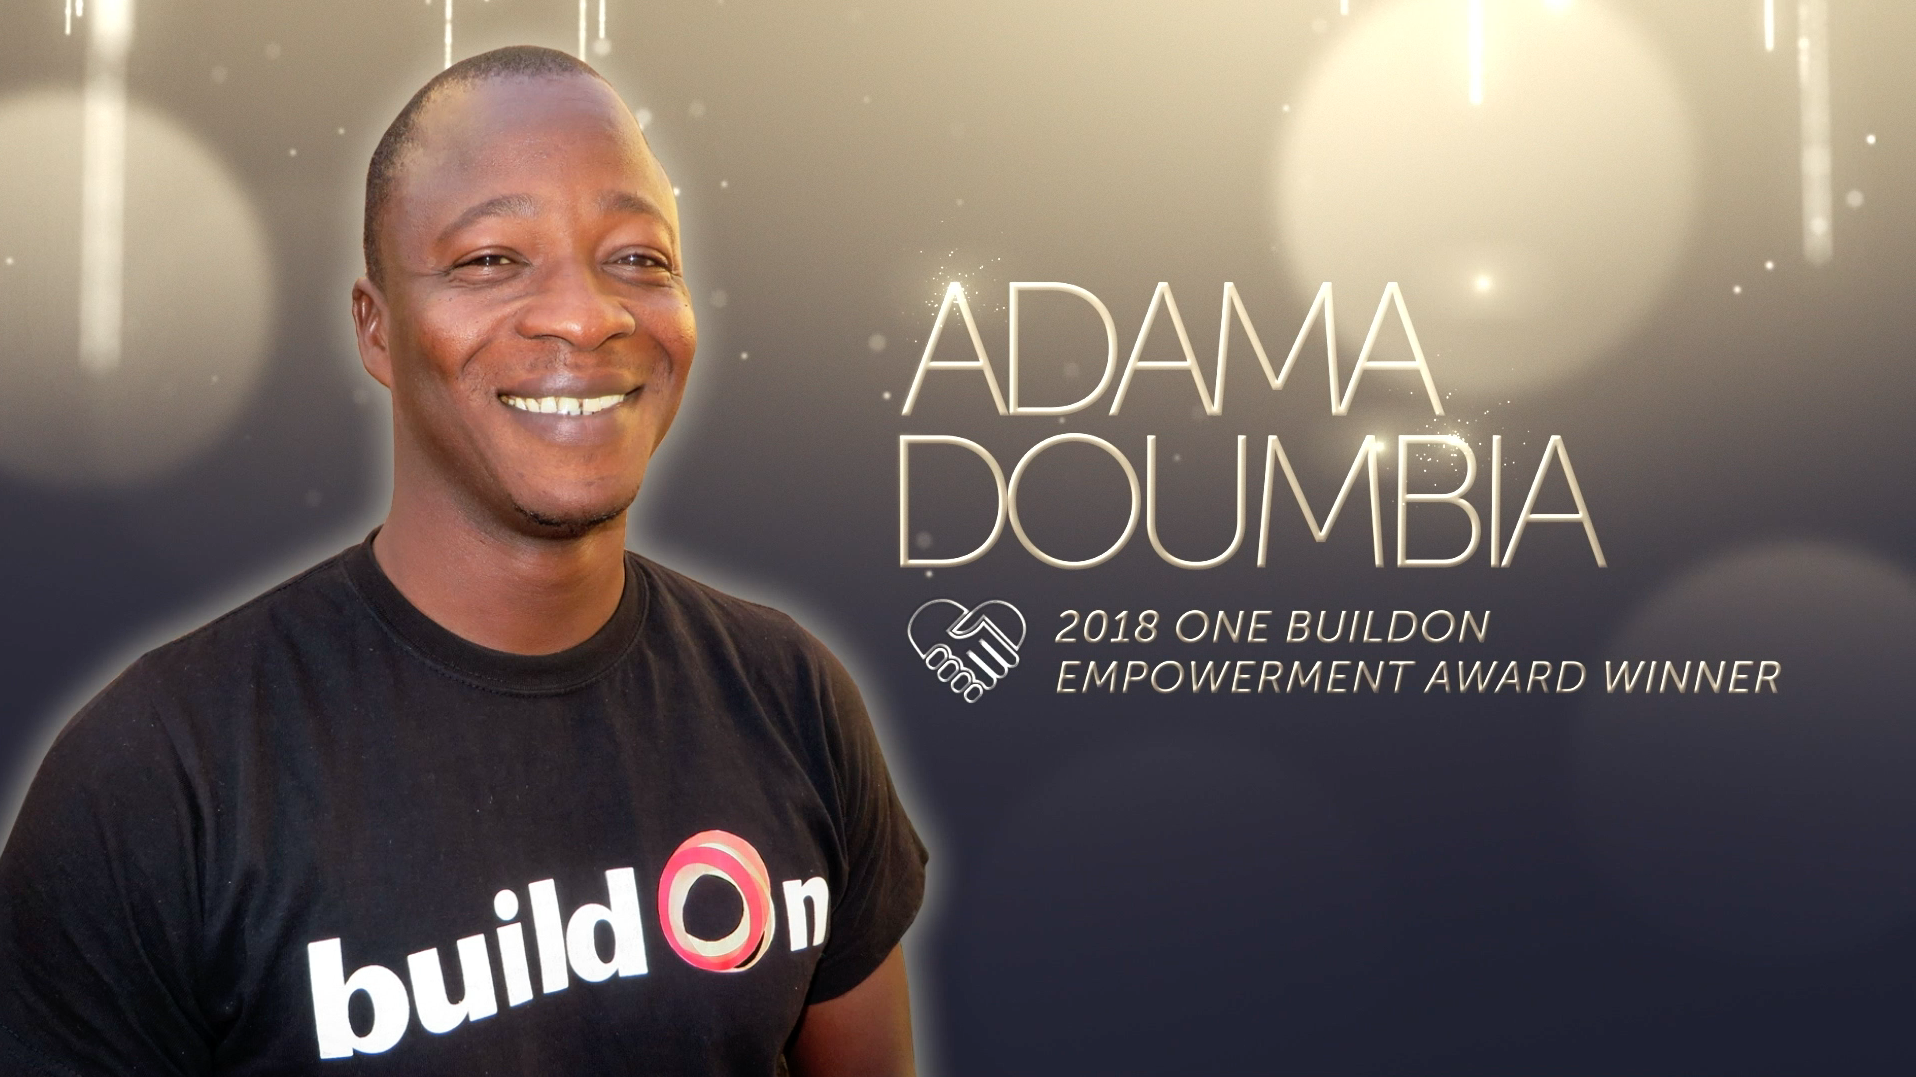 Adama Doubia, a Construction Manager from Mali, is the winner of the 2018 ONE buildOn Empowerment Award.